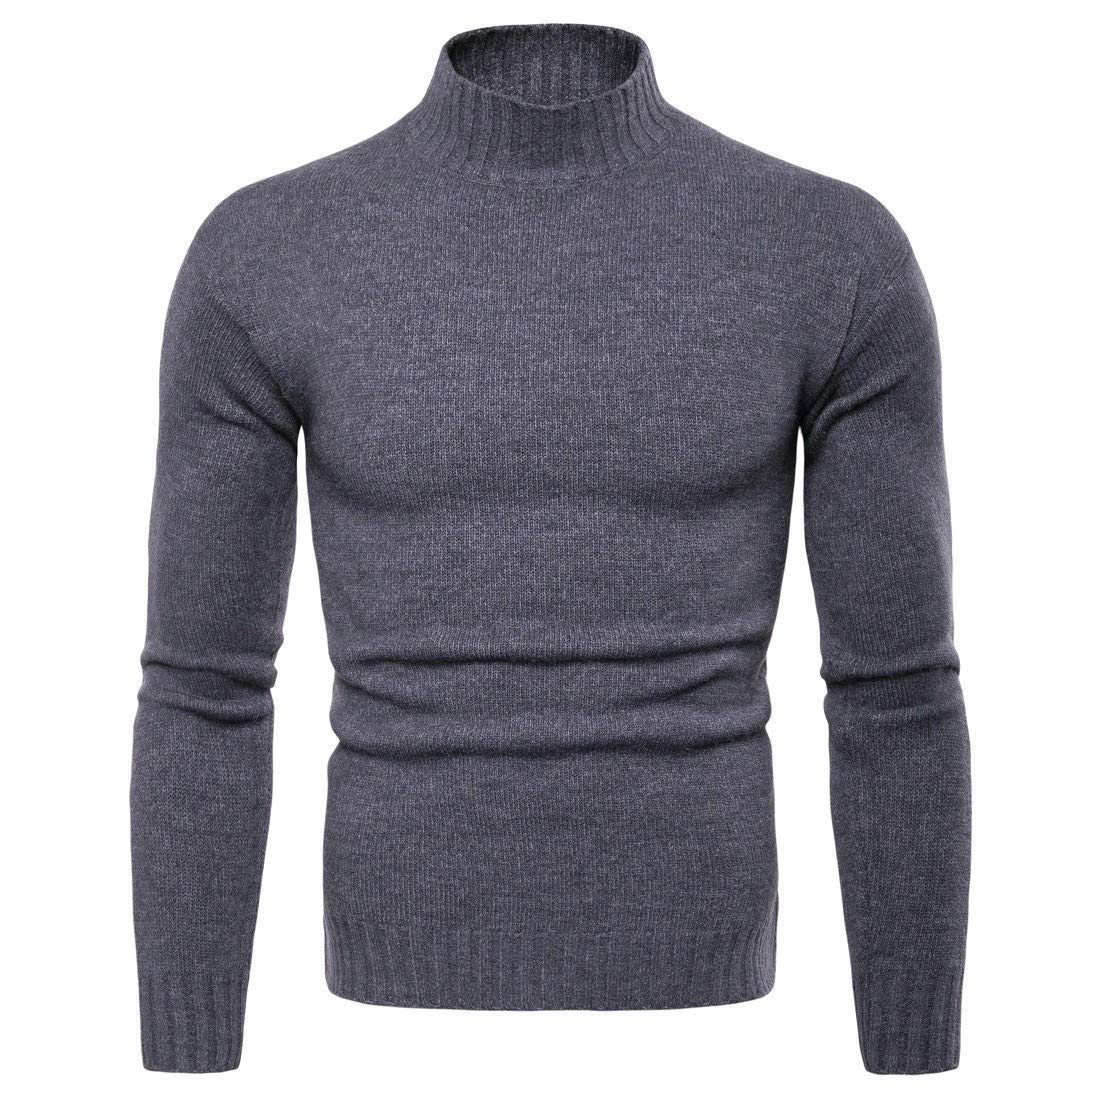 YUNY Mens Turtleneck Basic Plus Size Pure Colour Pullover Sweater Dark Grey XL